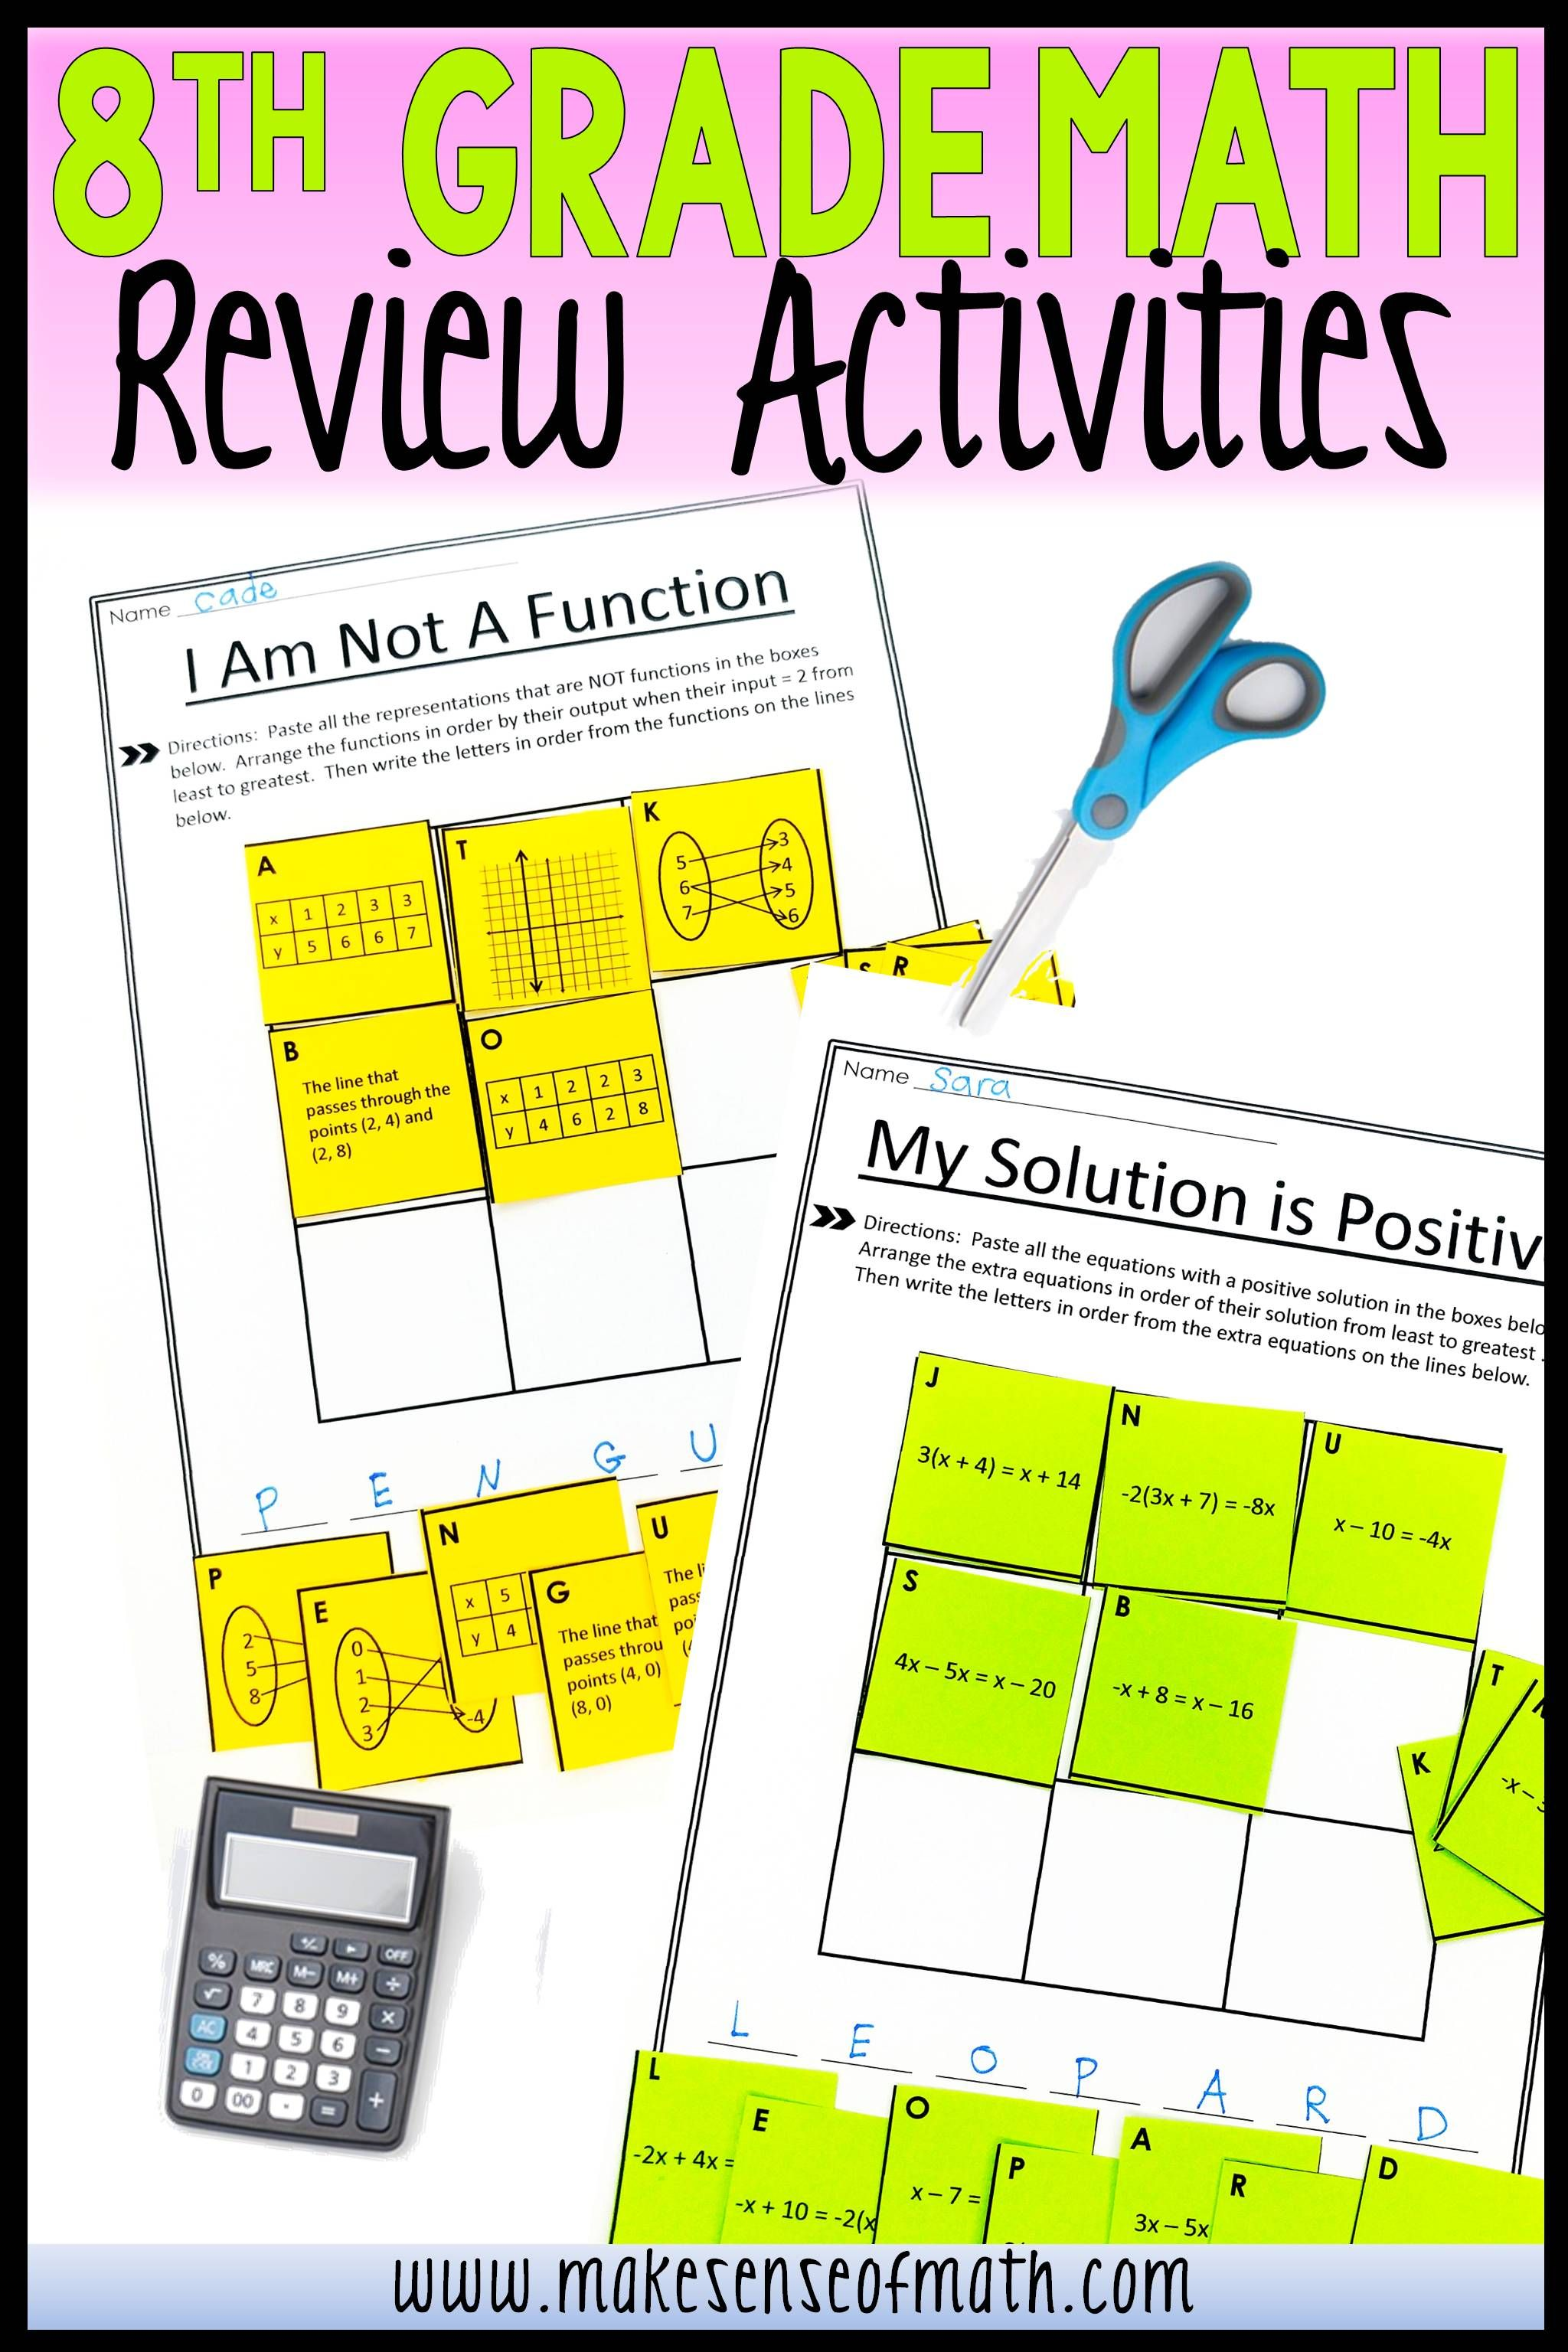 8th Grade Math Review Activities | Math review activities ...